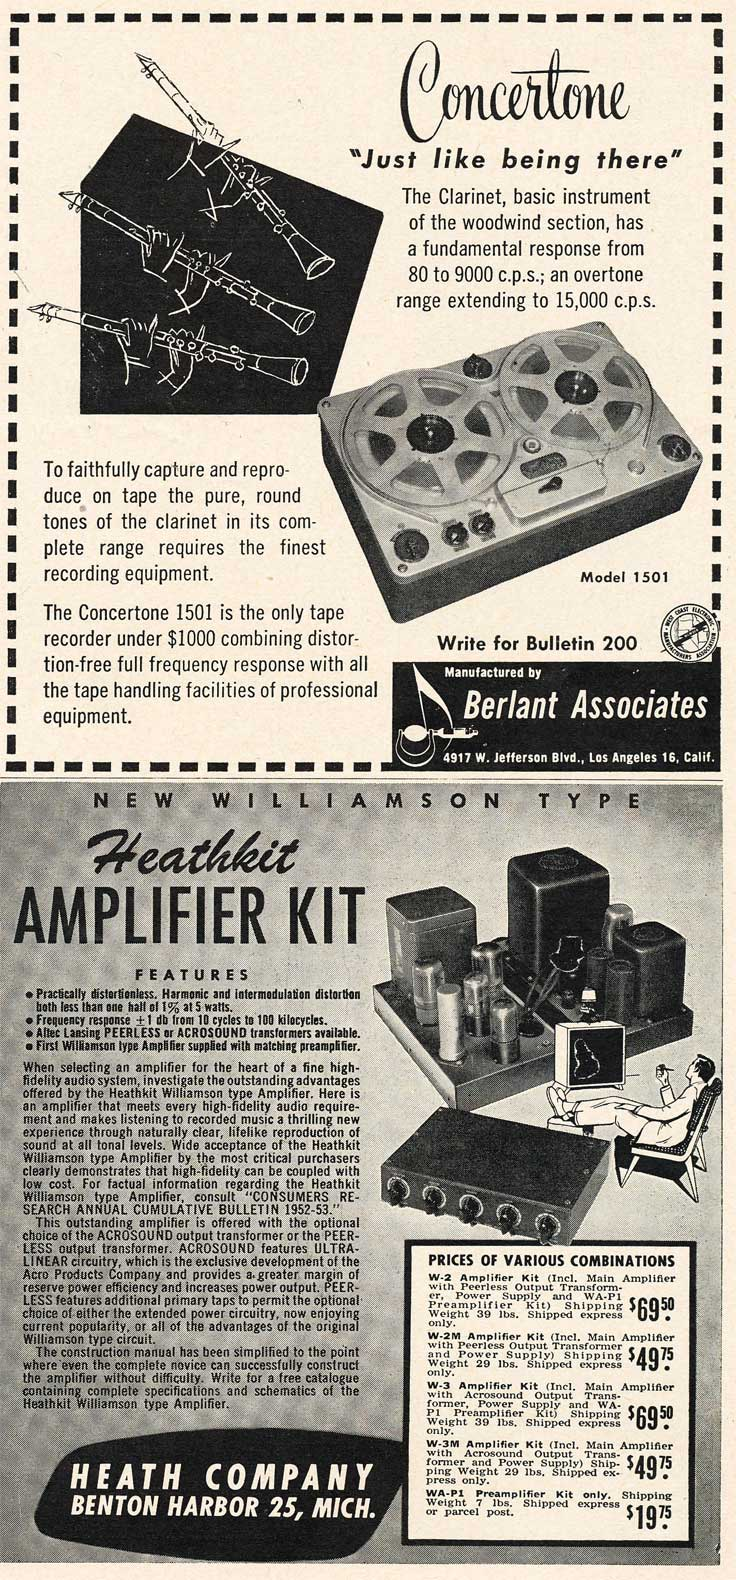 1953 Concertone and HeathKit ads in Reel2ReelTexas.com's vintage recording collection